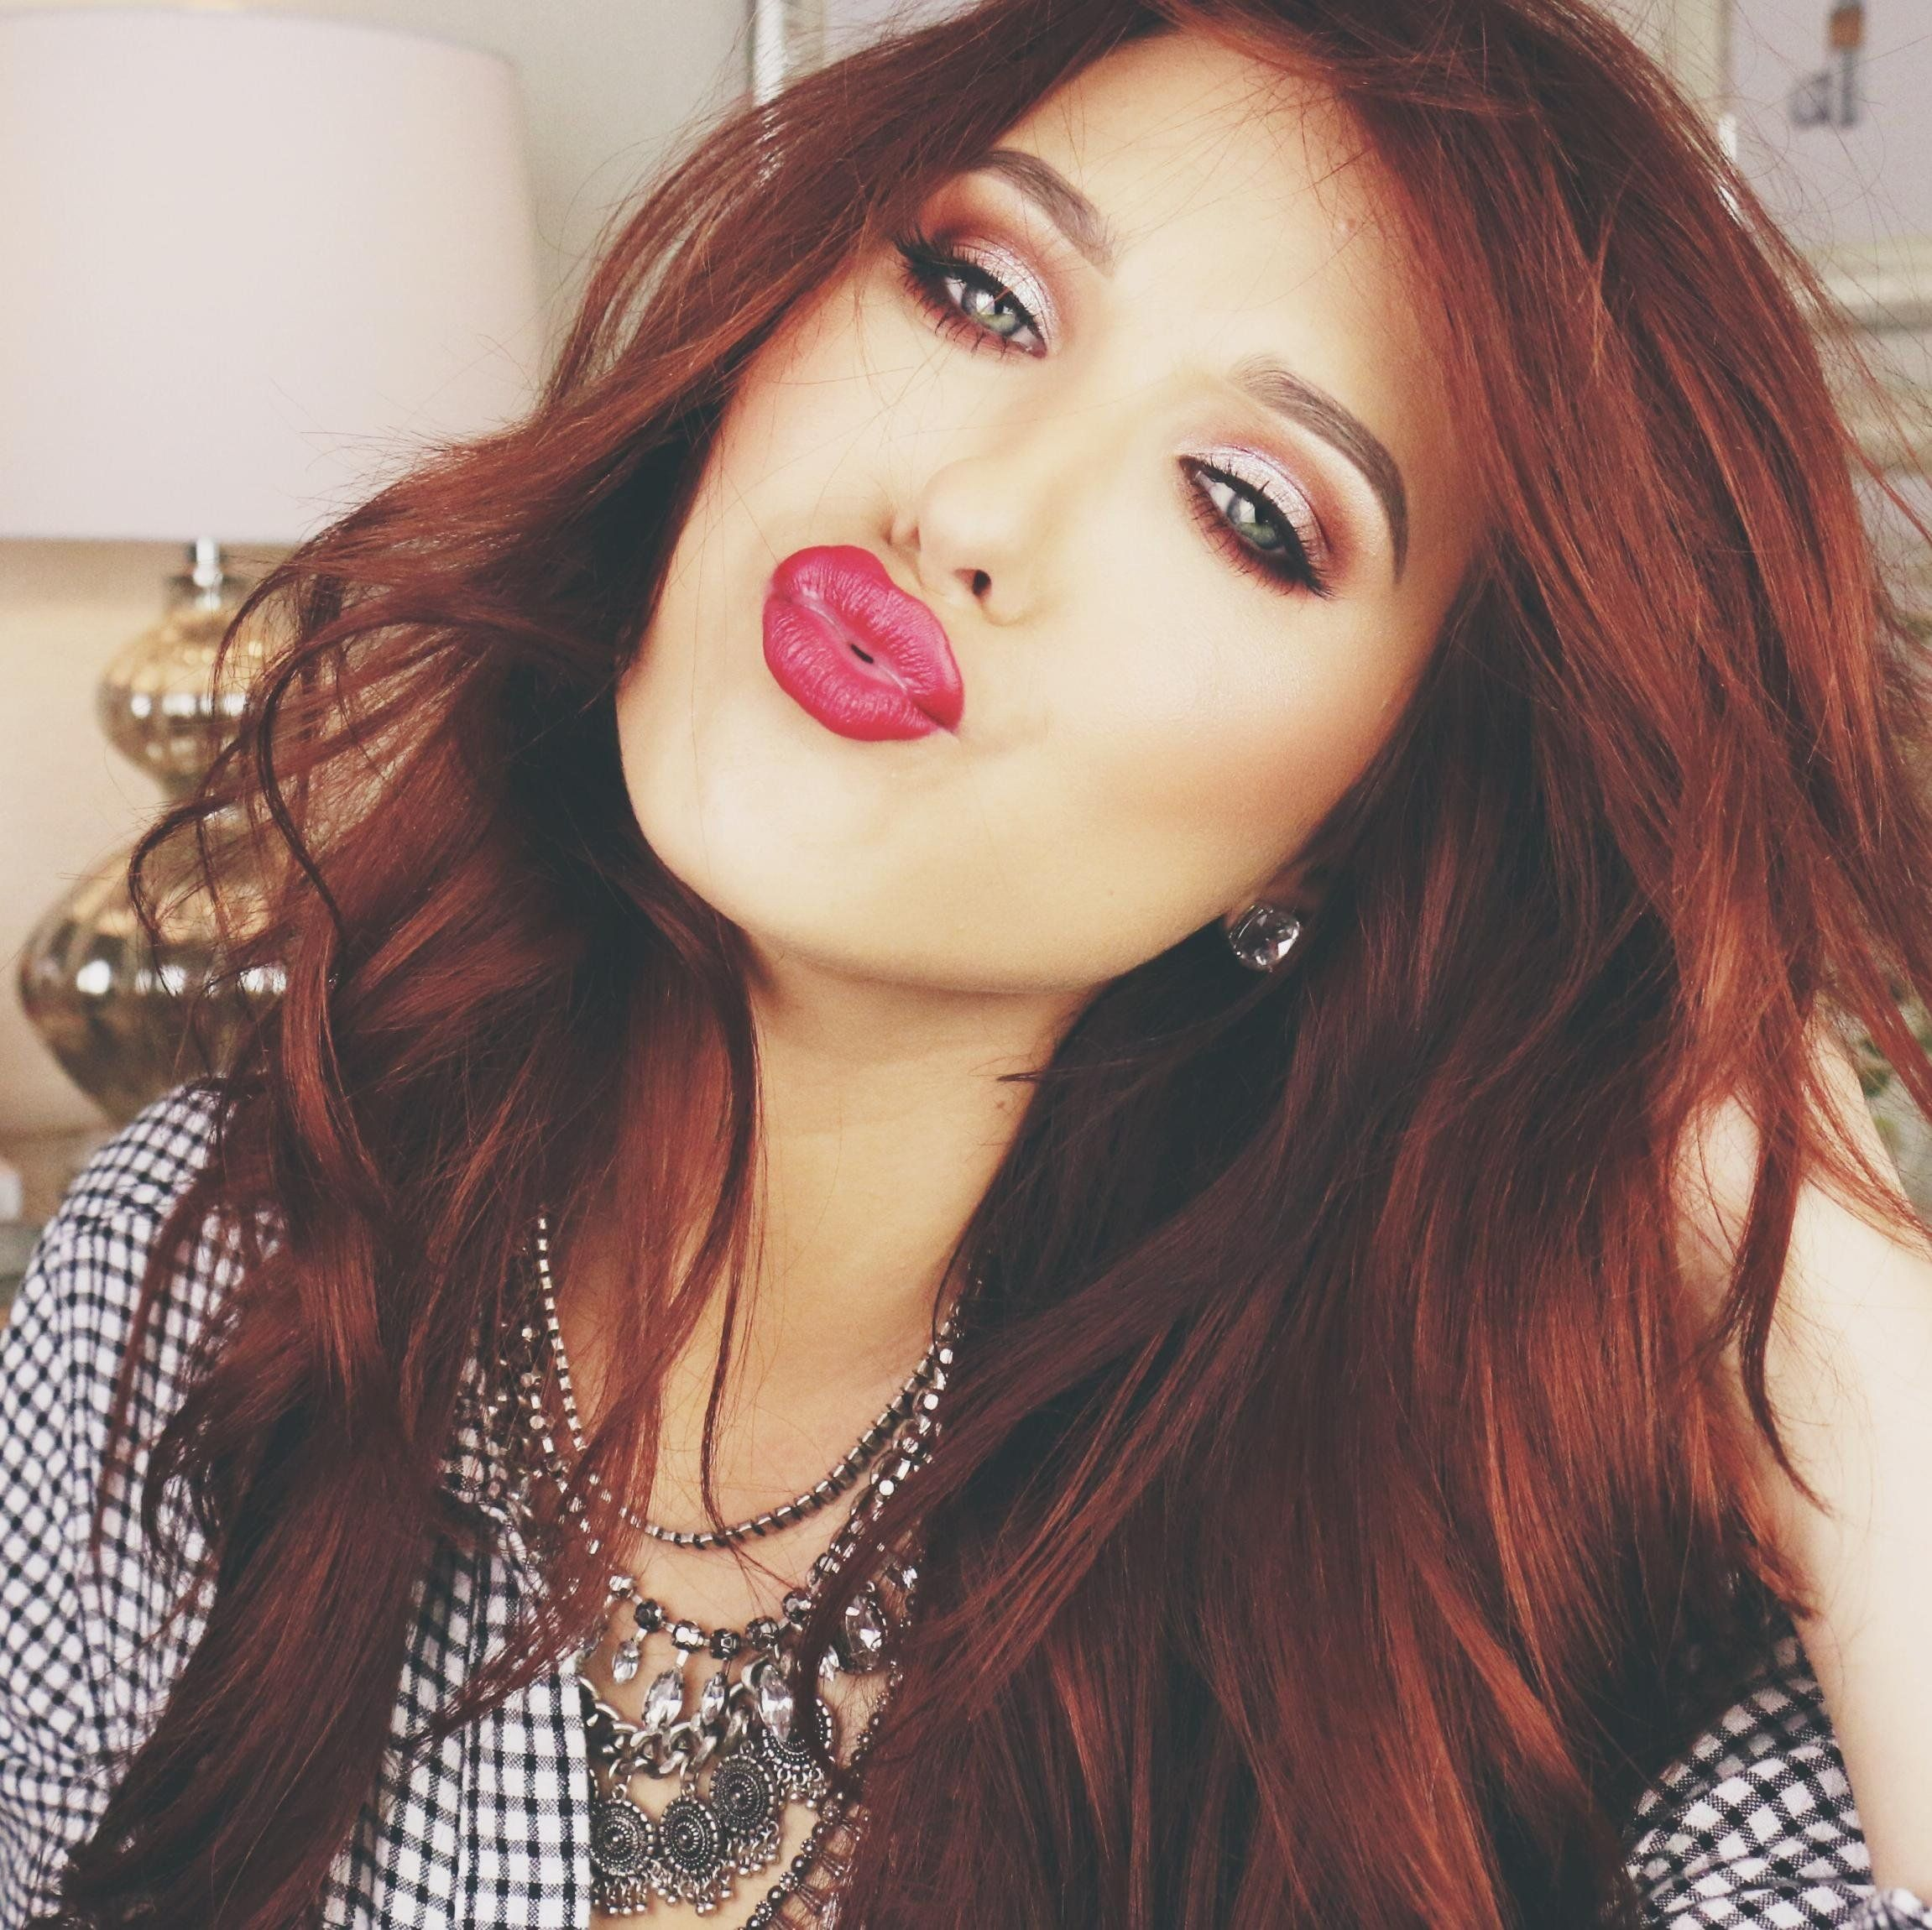 3 Jaclyn Hill 3 Shes A Natural Blonde And Is An Amazing Red Head